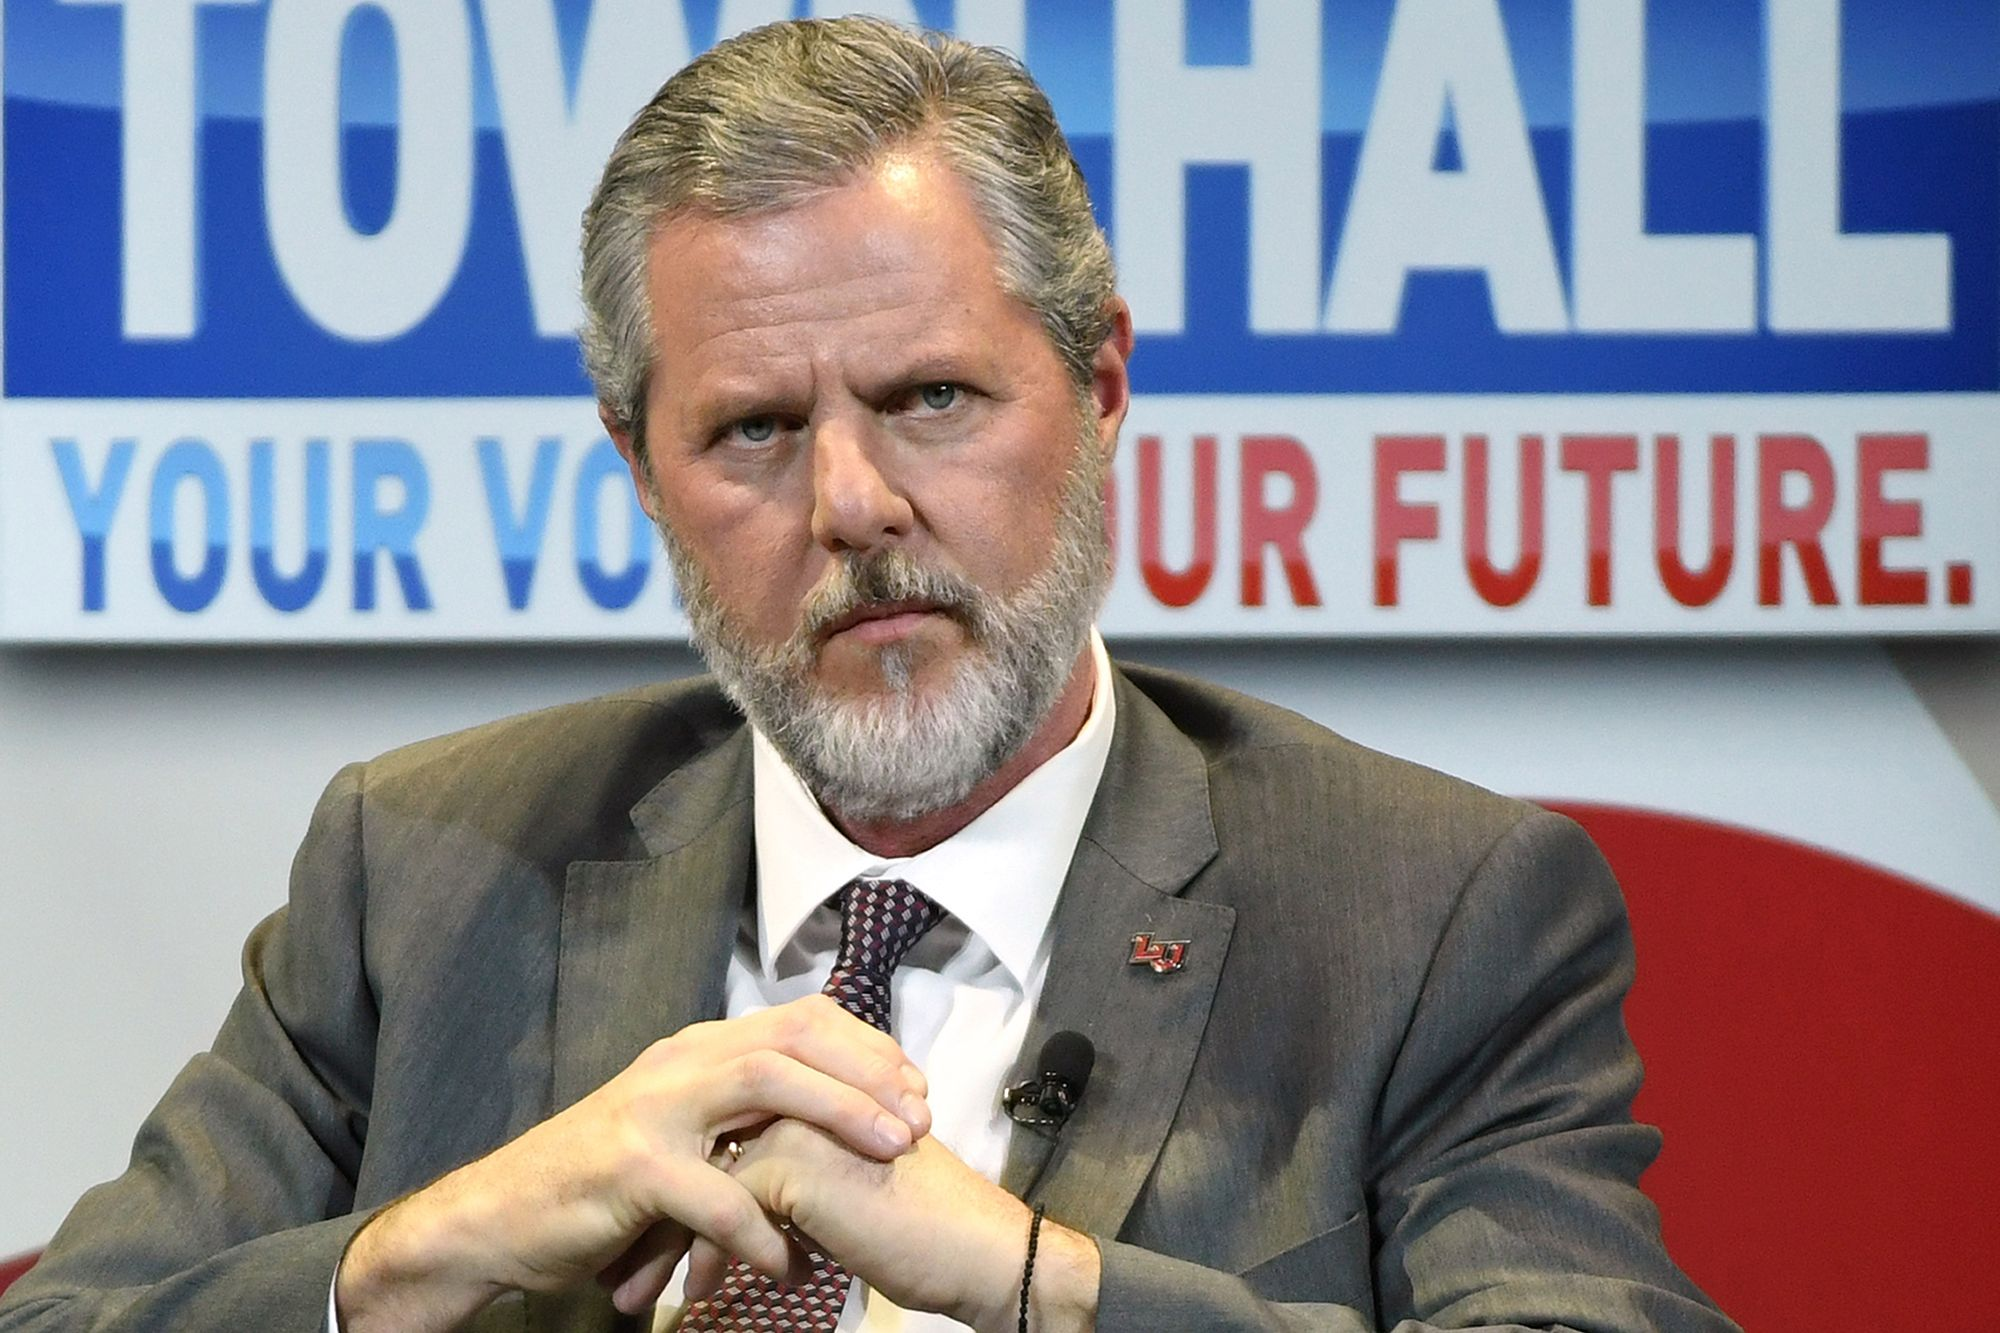 Jerry Falwell Jr Issues 'Arrest Warrants' Against NYT, ProPublica Reporters